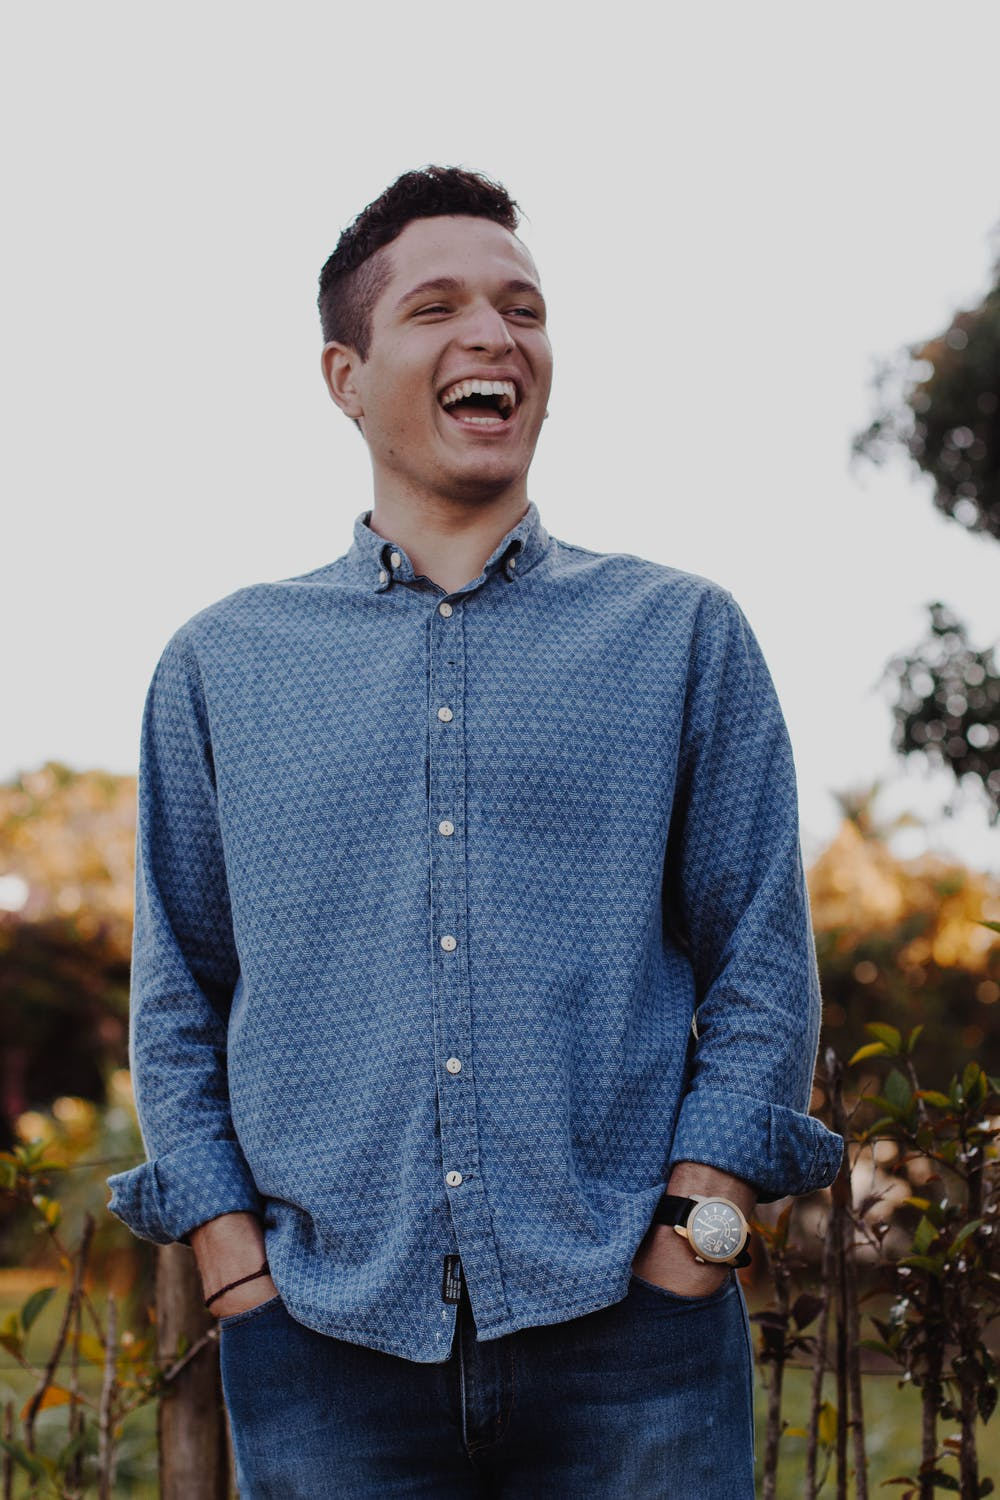 Young man laughing. | Photo: Pexels